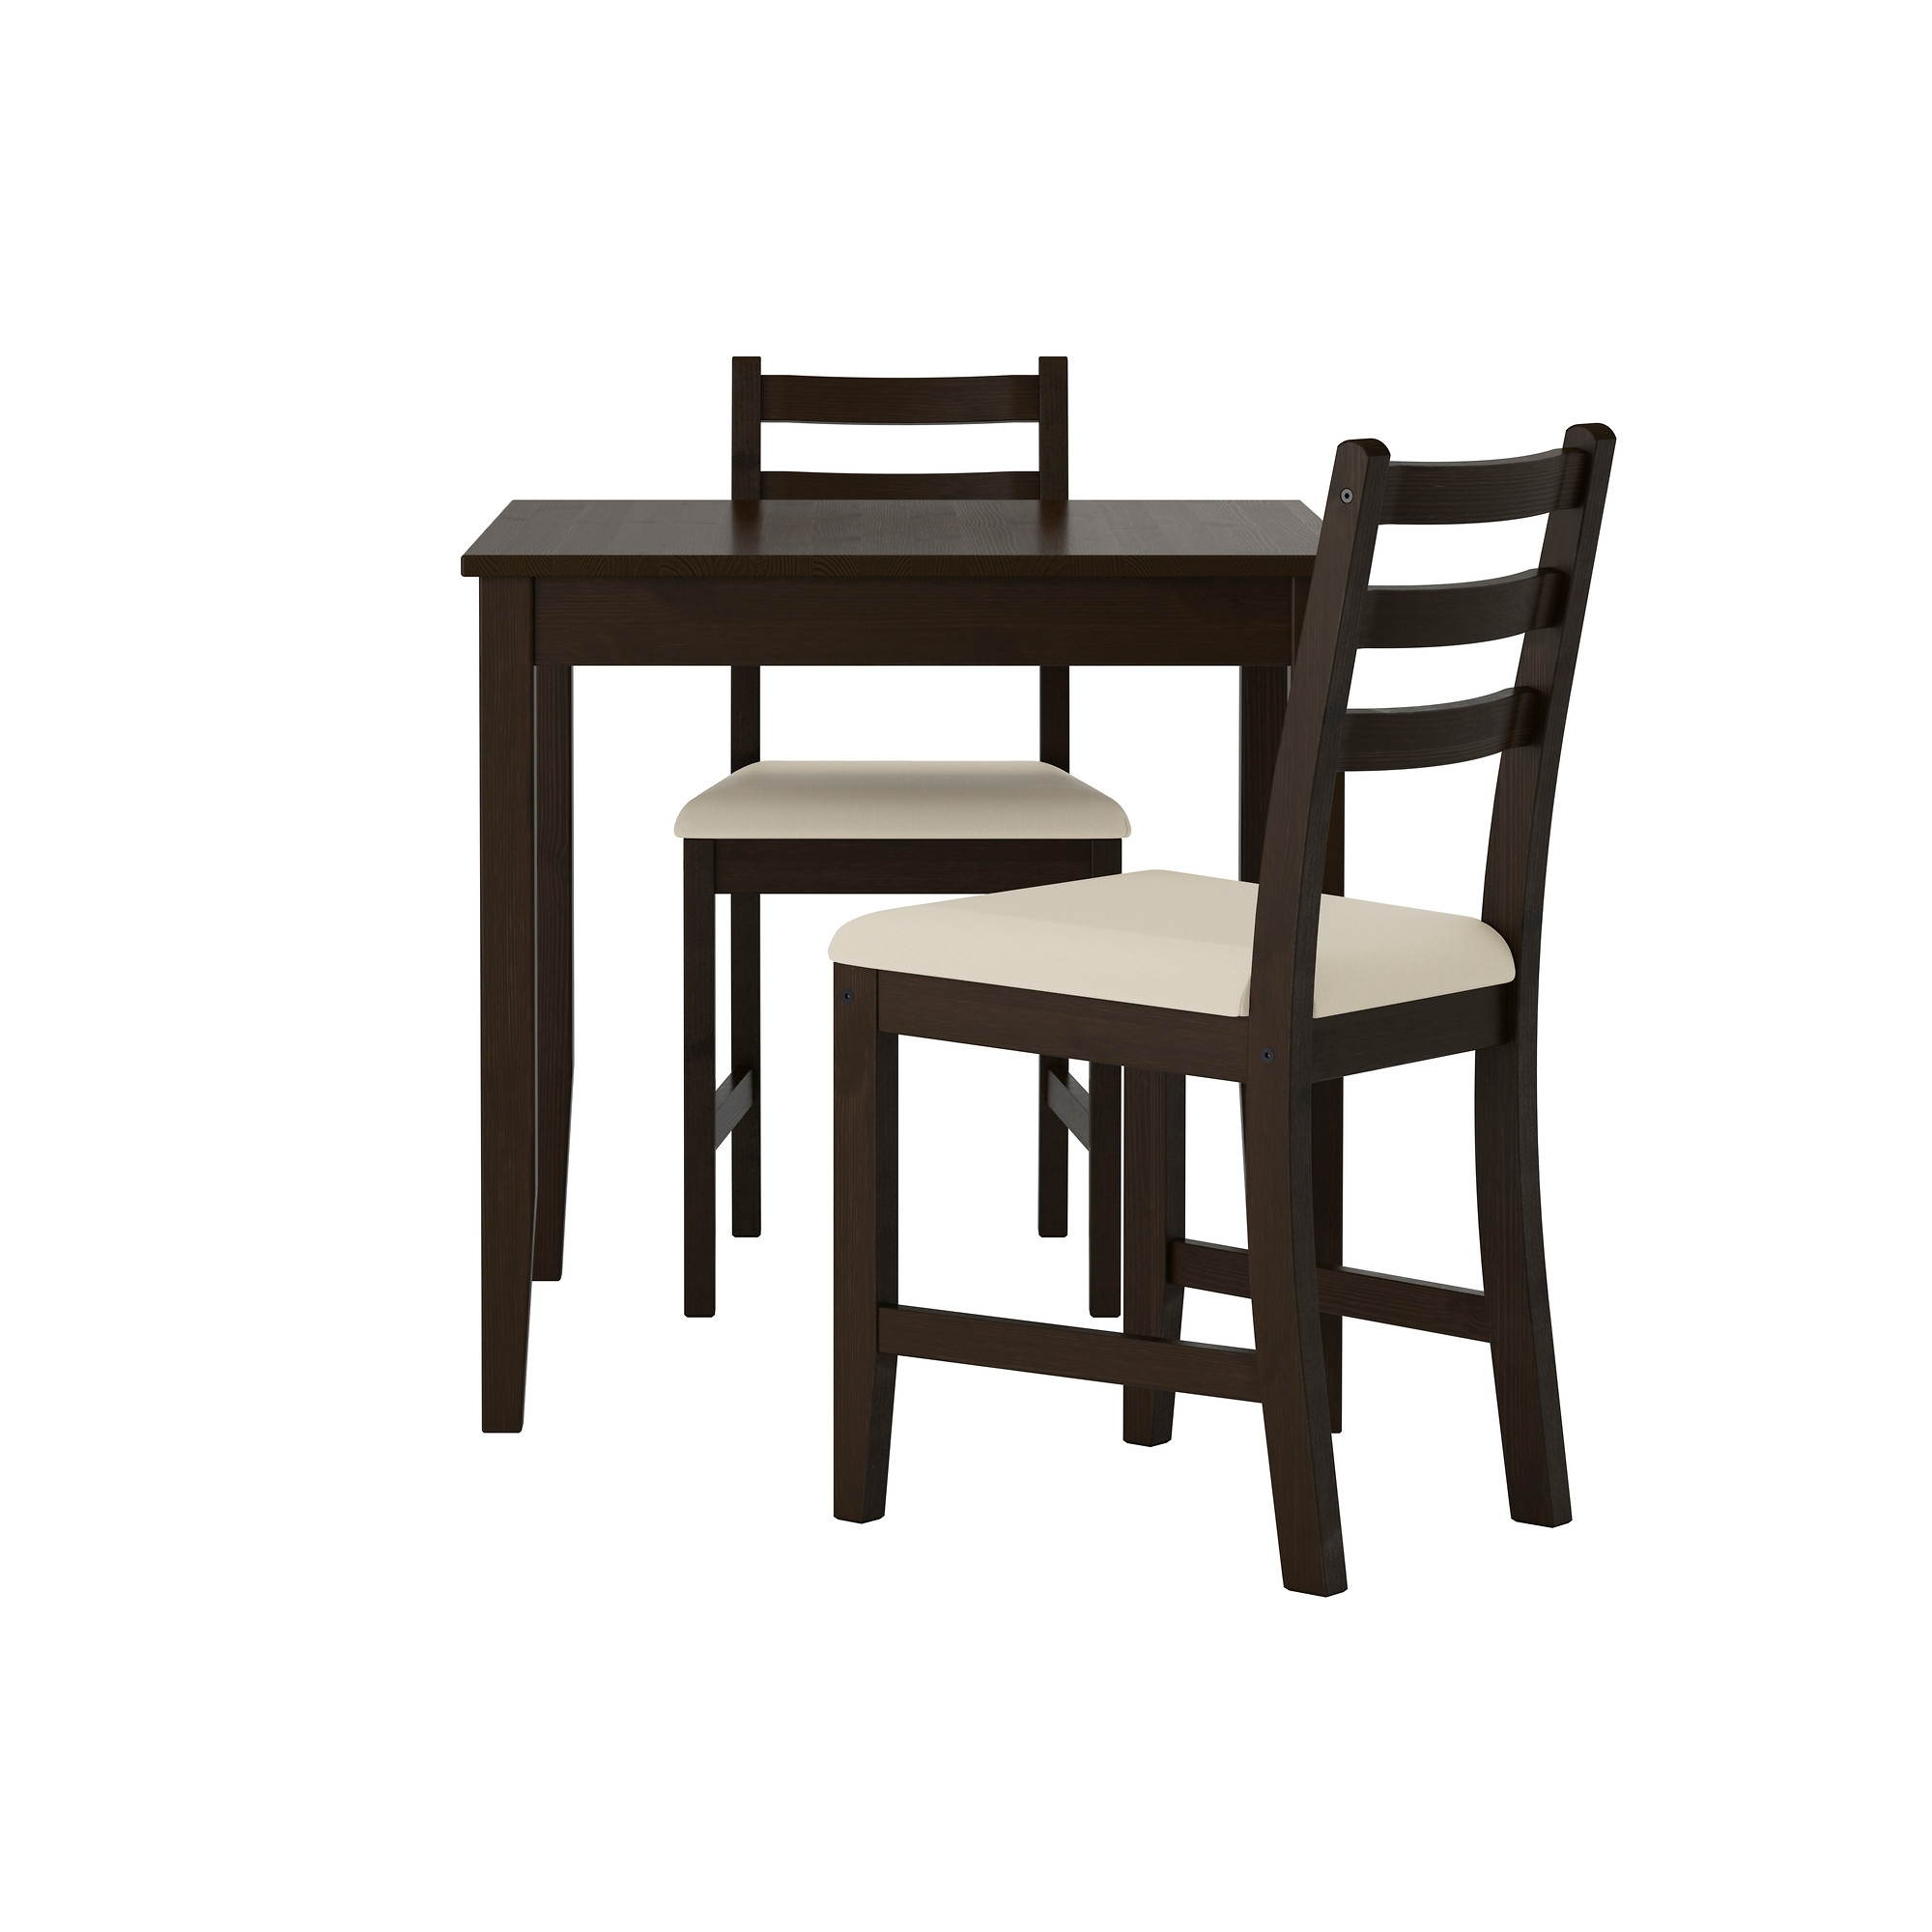 Small Dining Table Sets 2 Seater Dining Table Chairs, Ikea Table Inside Popular Small Dining Tables For  (View 13 of 25)